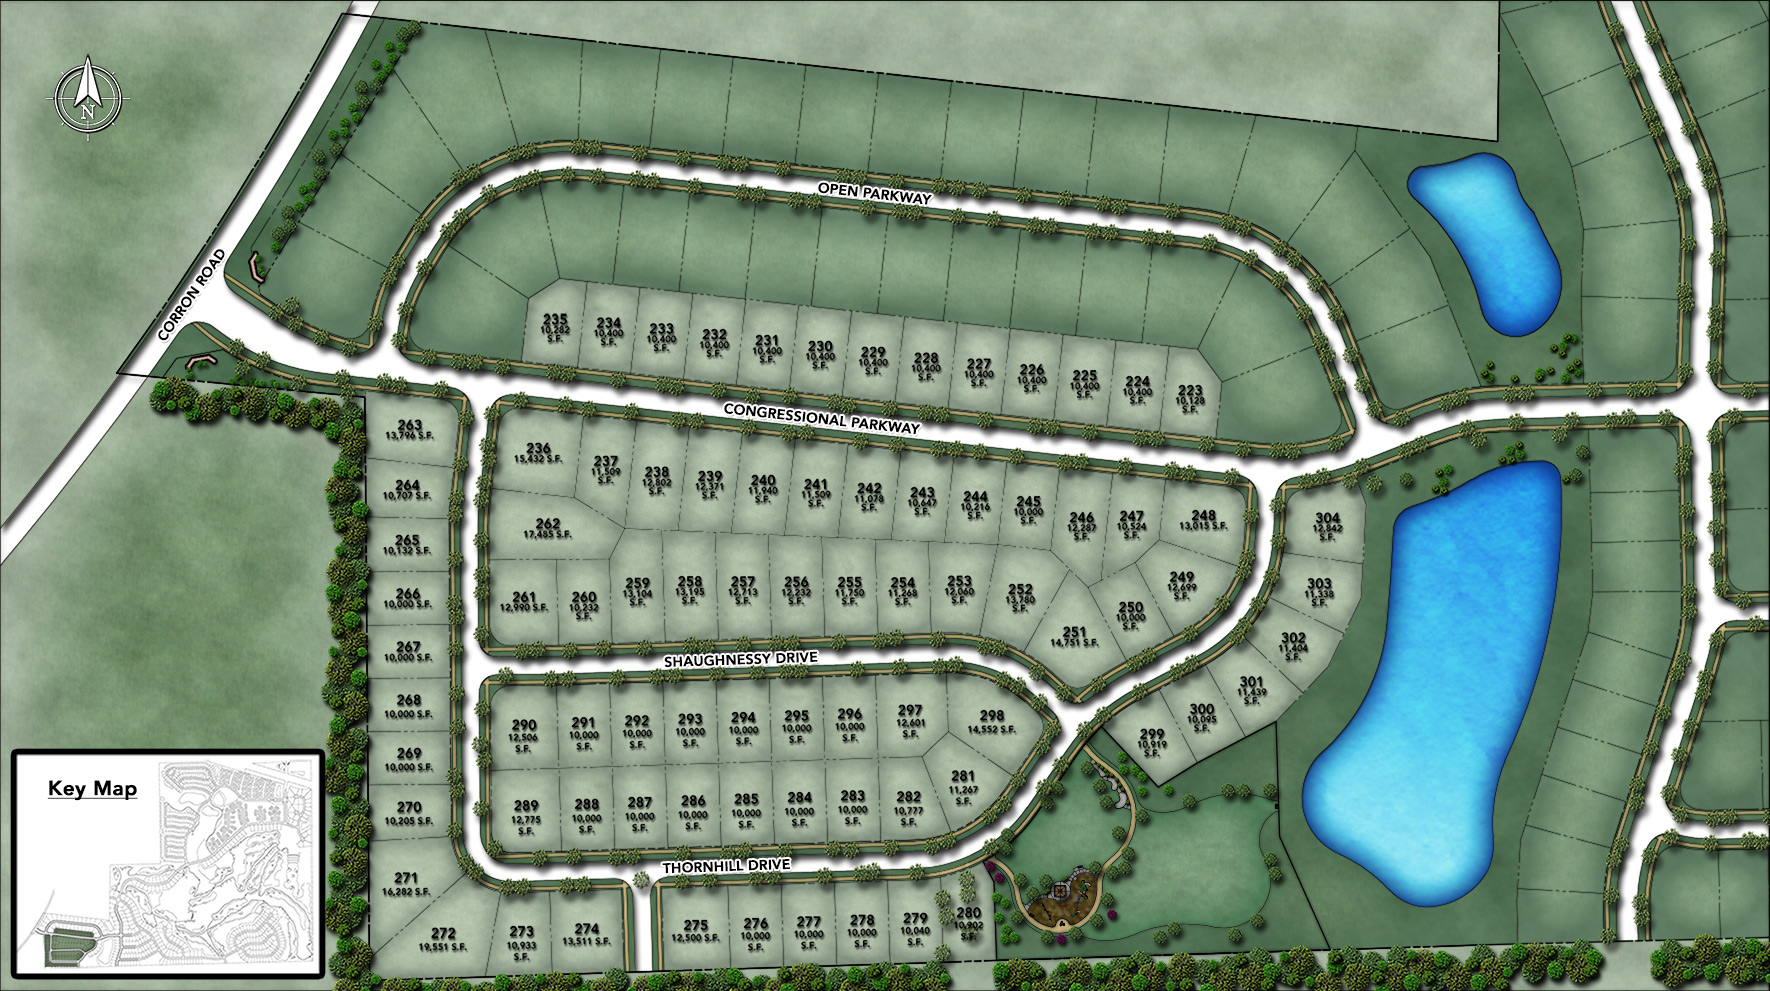 Bowes Creek Country Club - The Fairways Collection Site Plan